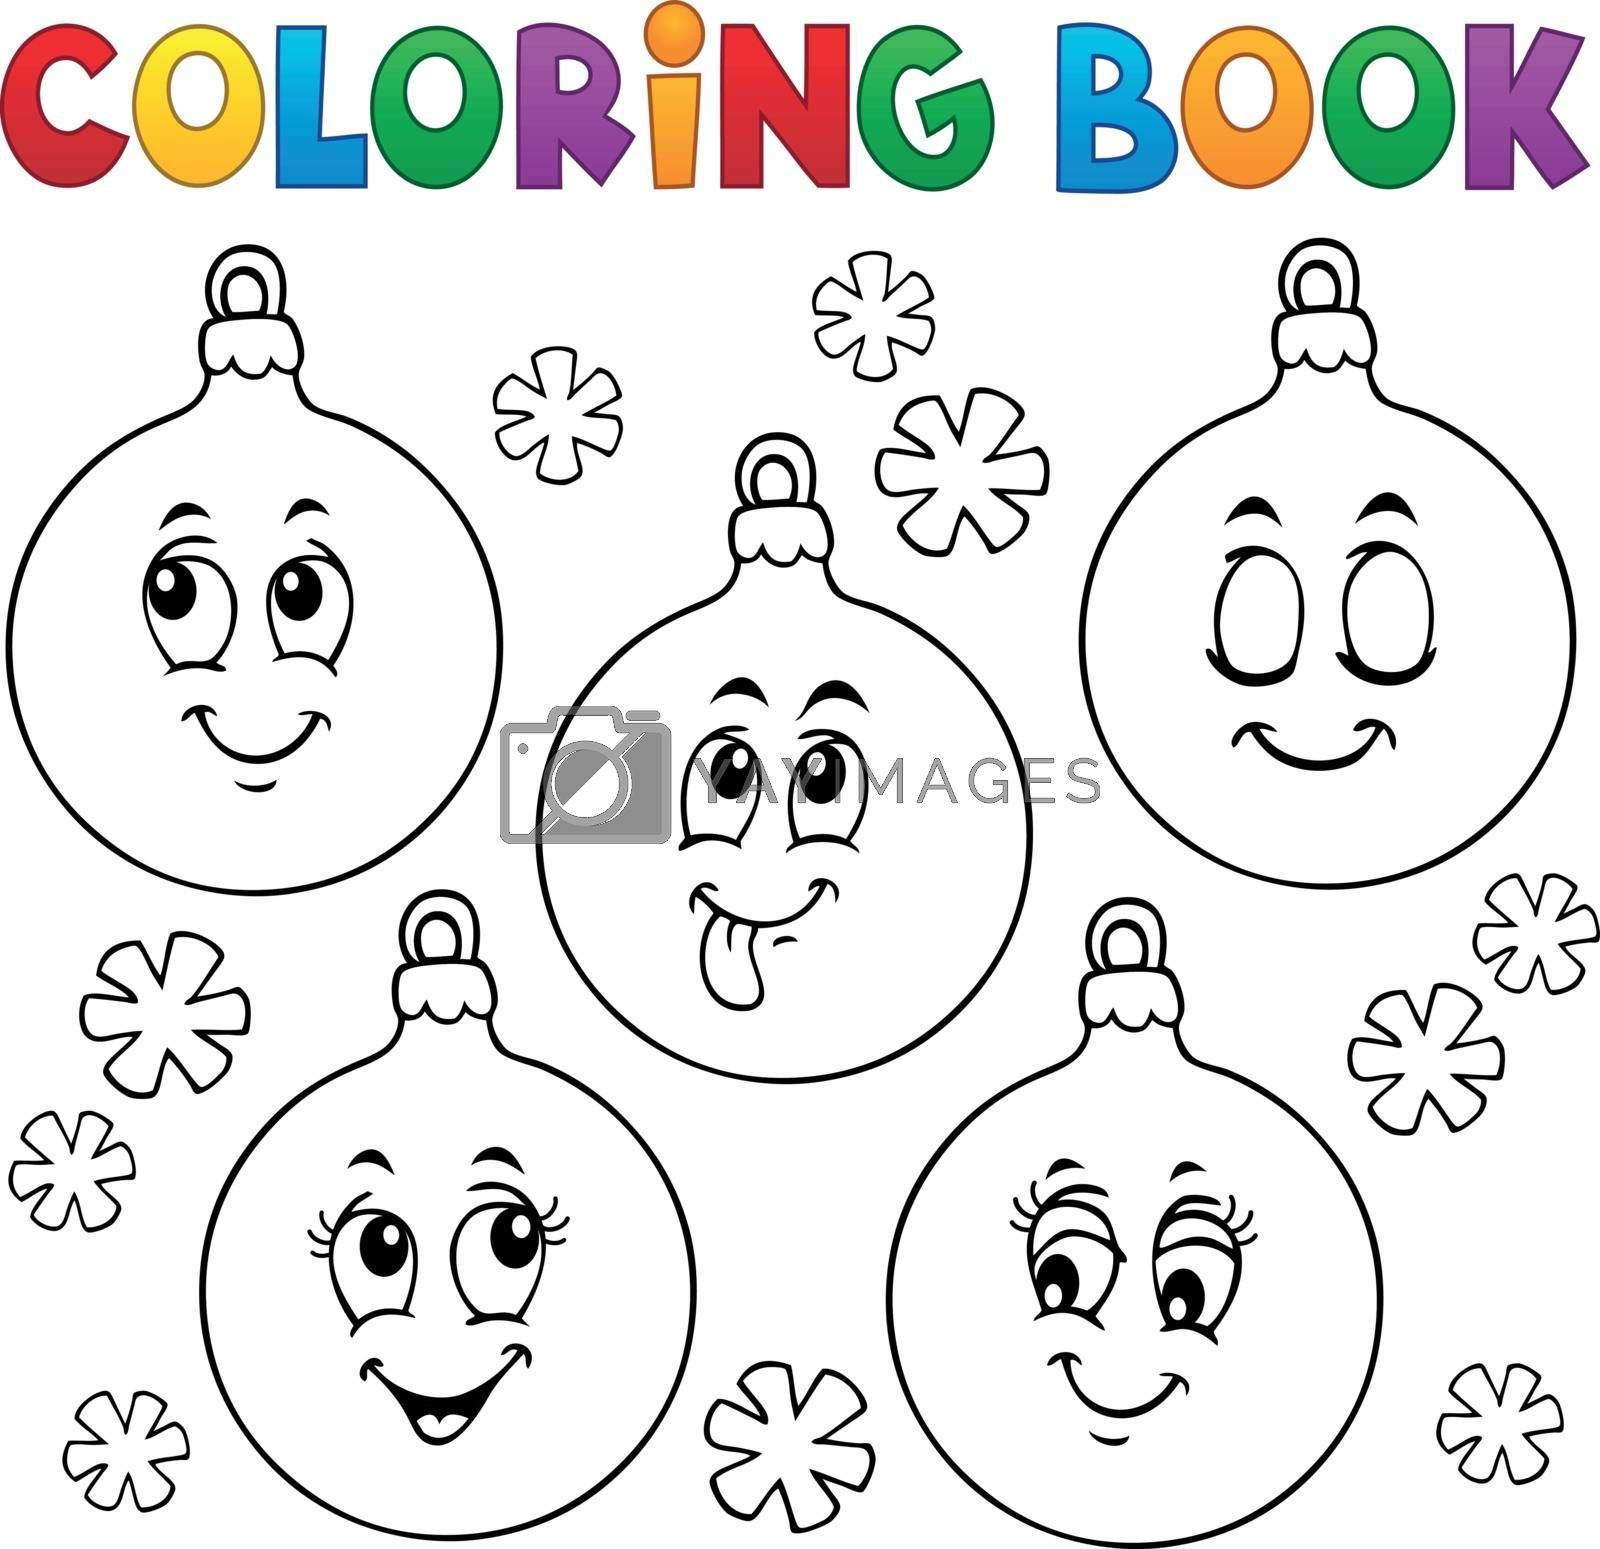 Coloring book Christmas ornaments 1 - eps10 vector illustration.